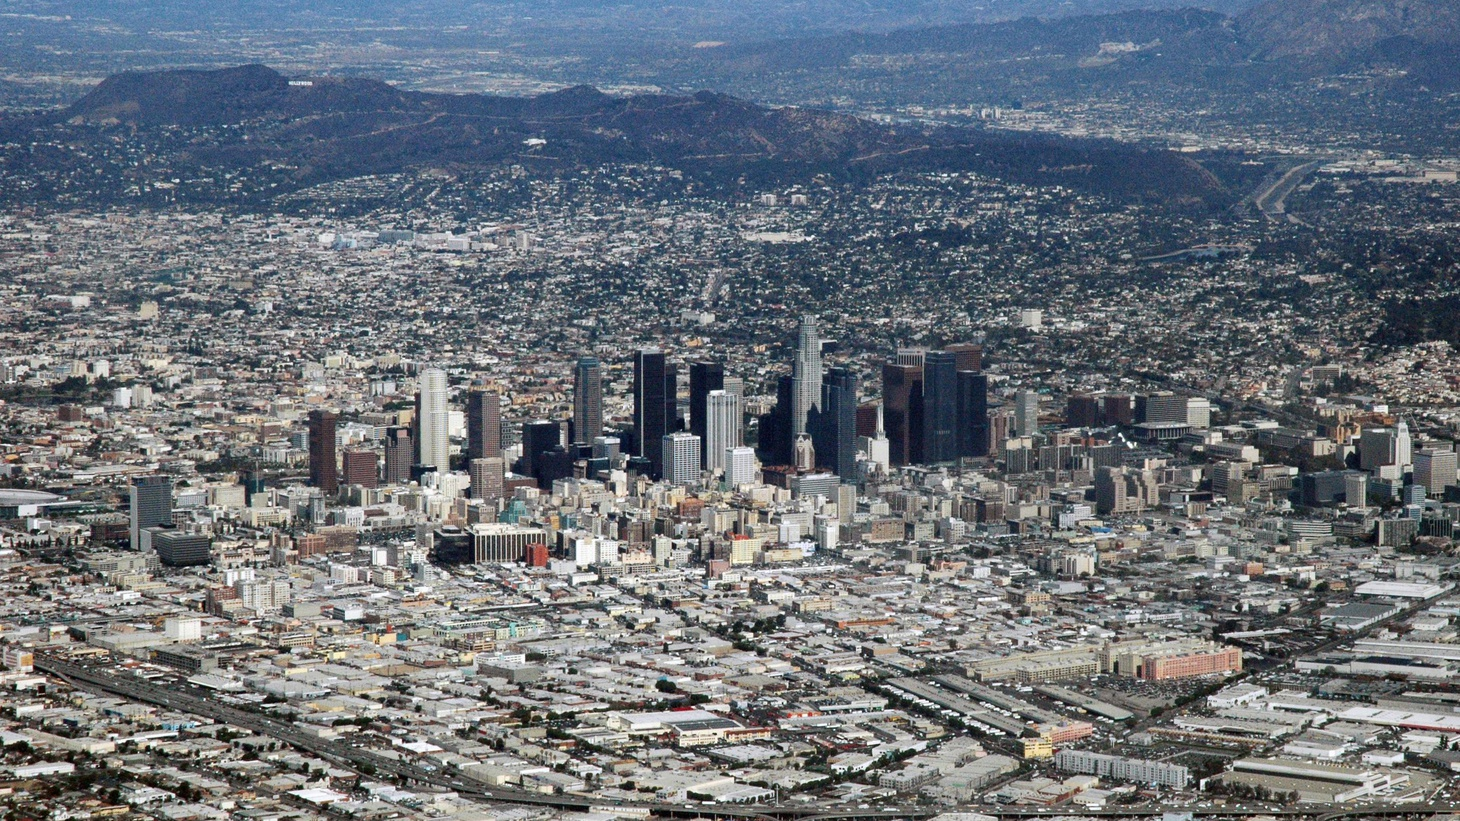 Today, the 2020 Commission made proposals for improving Los Angeles by raising the minimum wage, more oversight for the DWP, and merging the ports of LA and Long Beach.